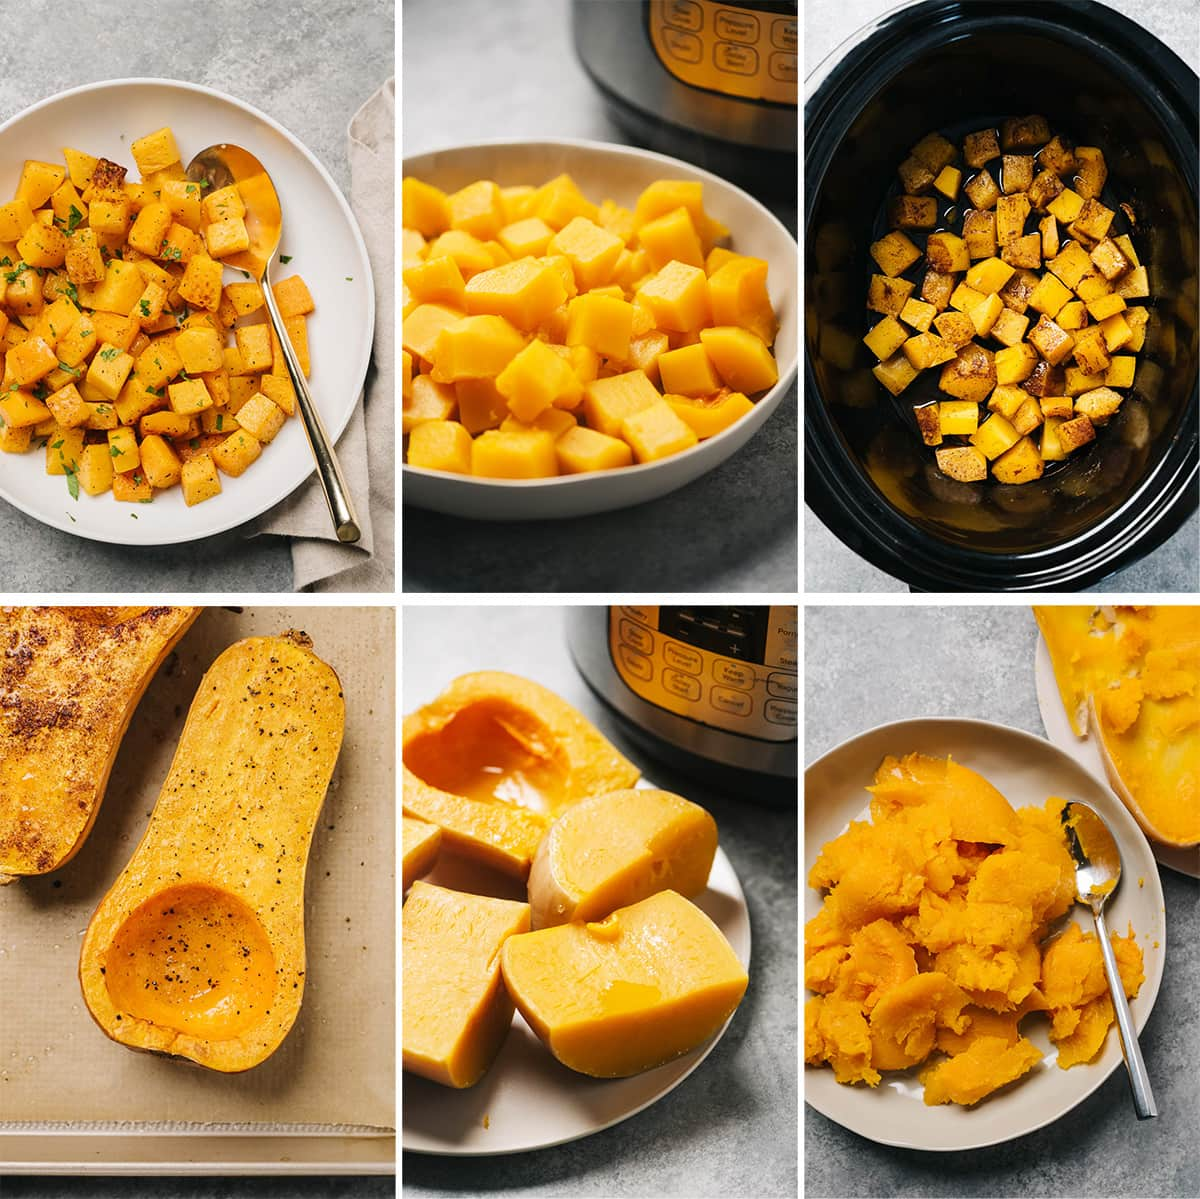 A collage showing six ways to cook butternut squash - roasted, instant pot, slow cooker; diced or halved.